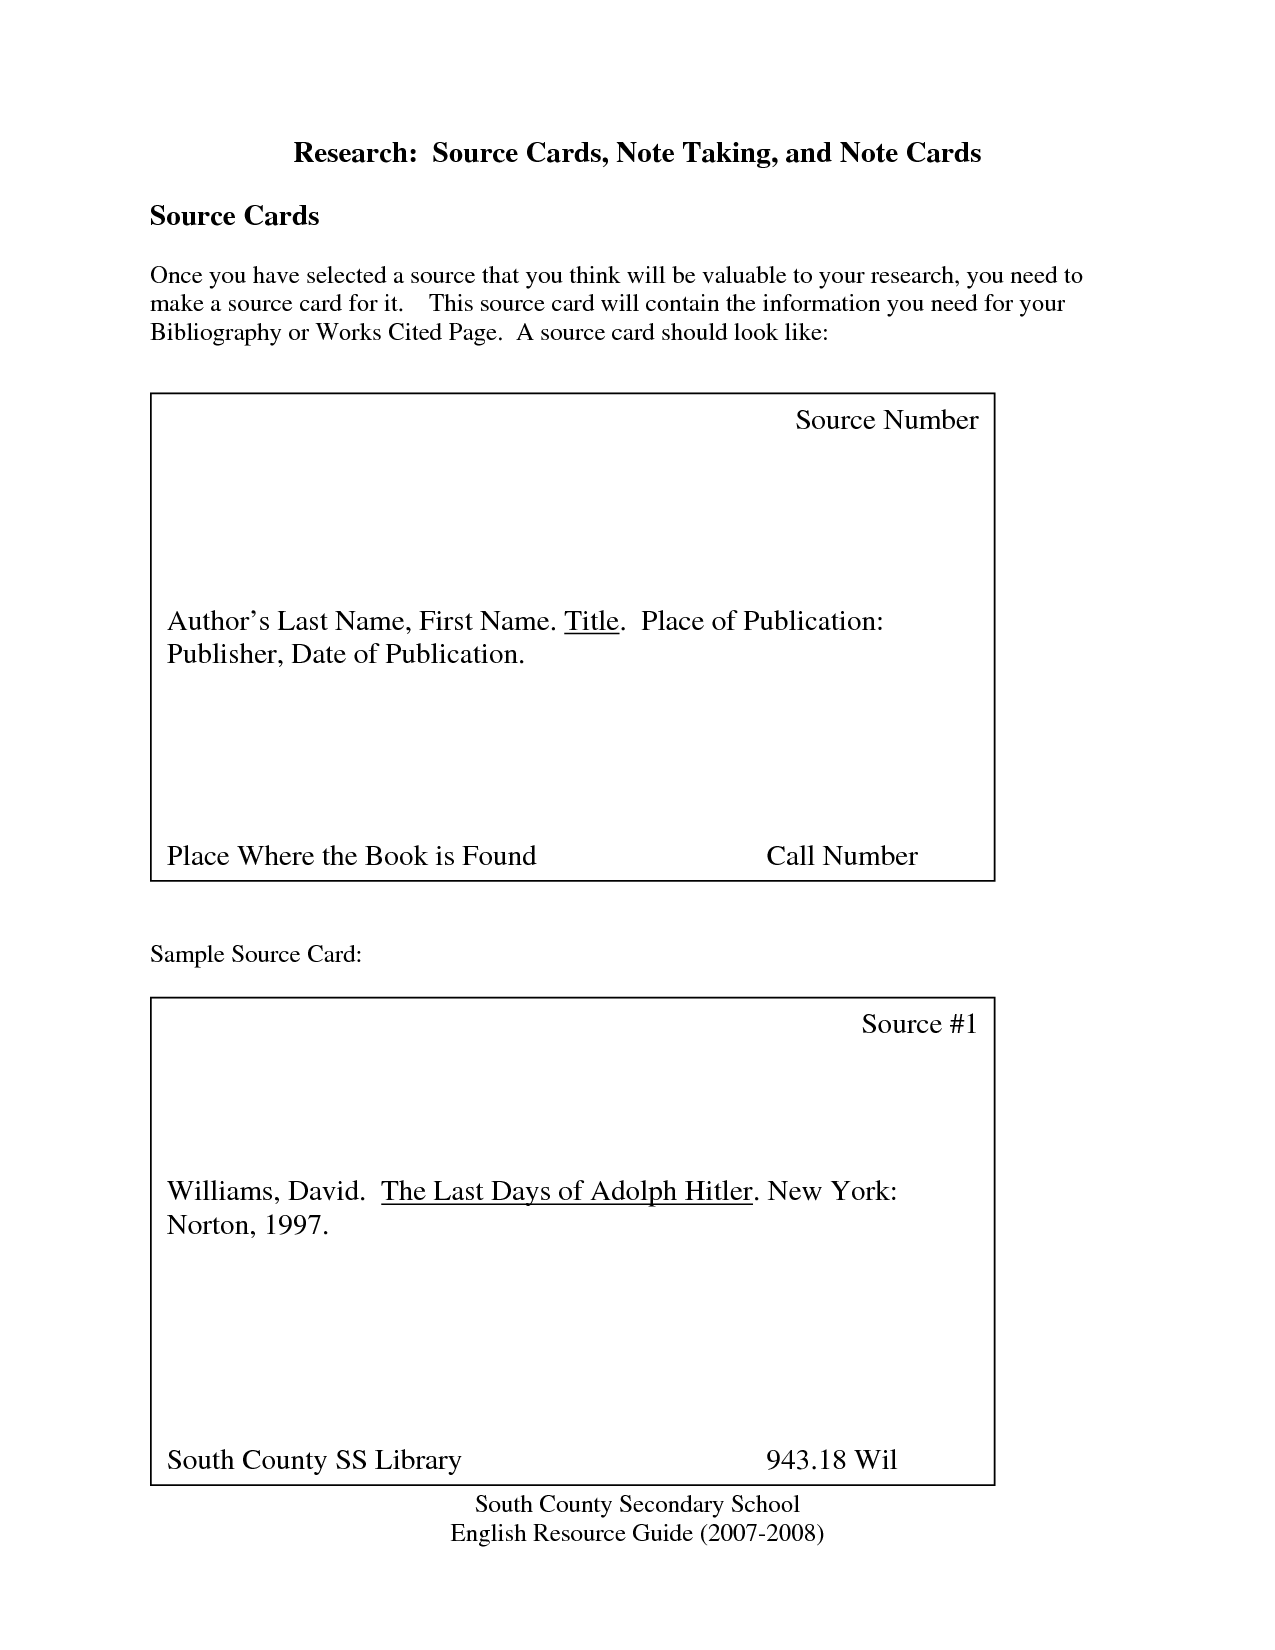 009 Research Paper Note Card Templates 442160 Notecards For Shocking Mla Sample How To Write Full